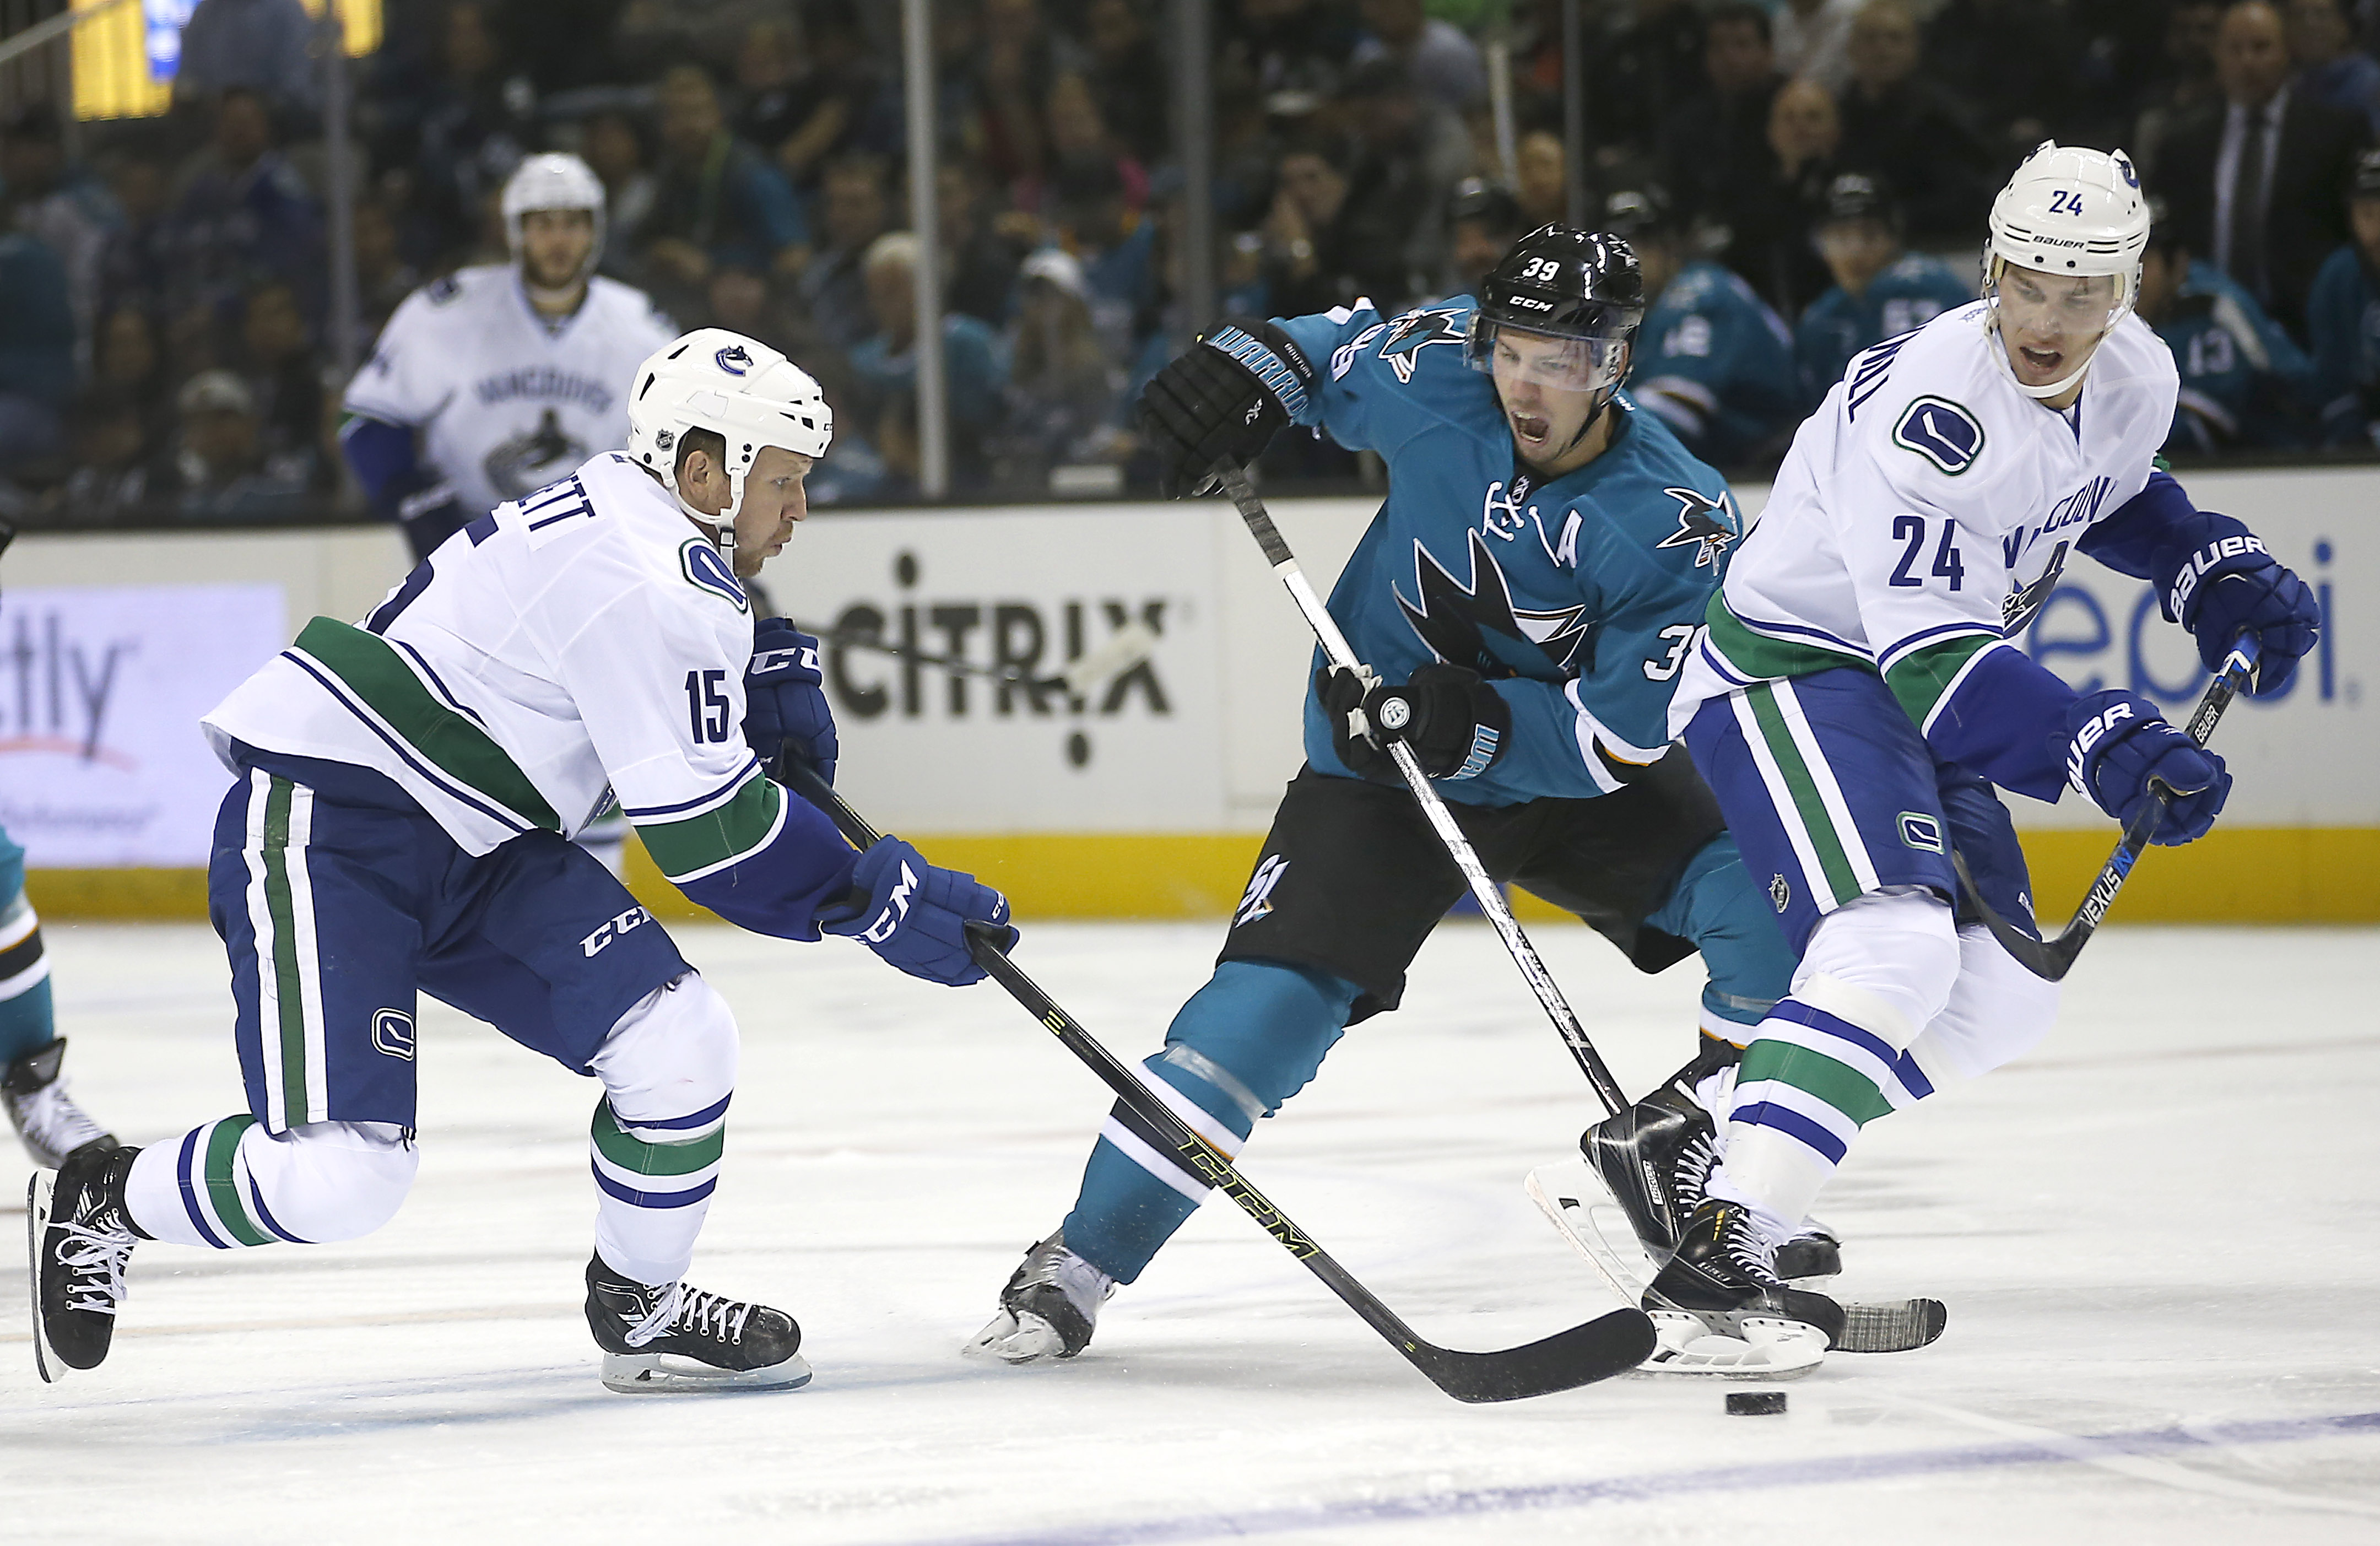 Vancouver Canucks' Derek Dorsett (15) and Adam Cracknell (24) battles for the puck against San Jose Sharks center Logan Couture (39) during the second period of an NHL preseason hockey game Tuesday, Sept. 29, 2015, in San Jose, Calif. (AP Photo/Tony Avela